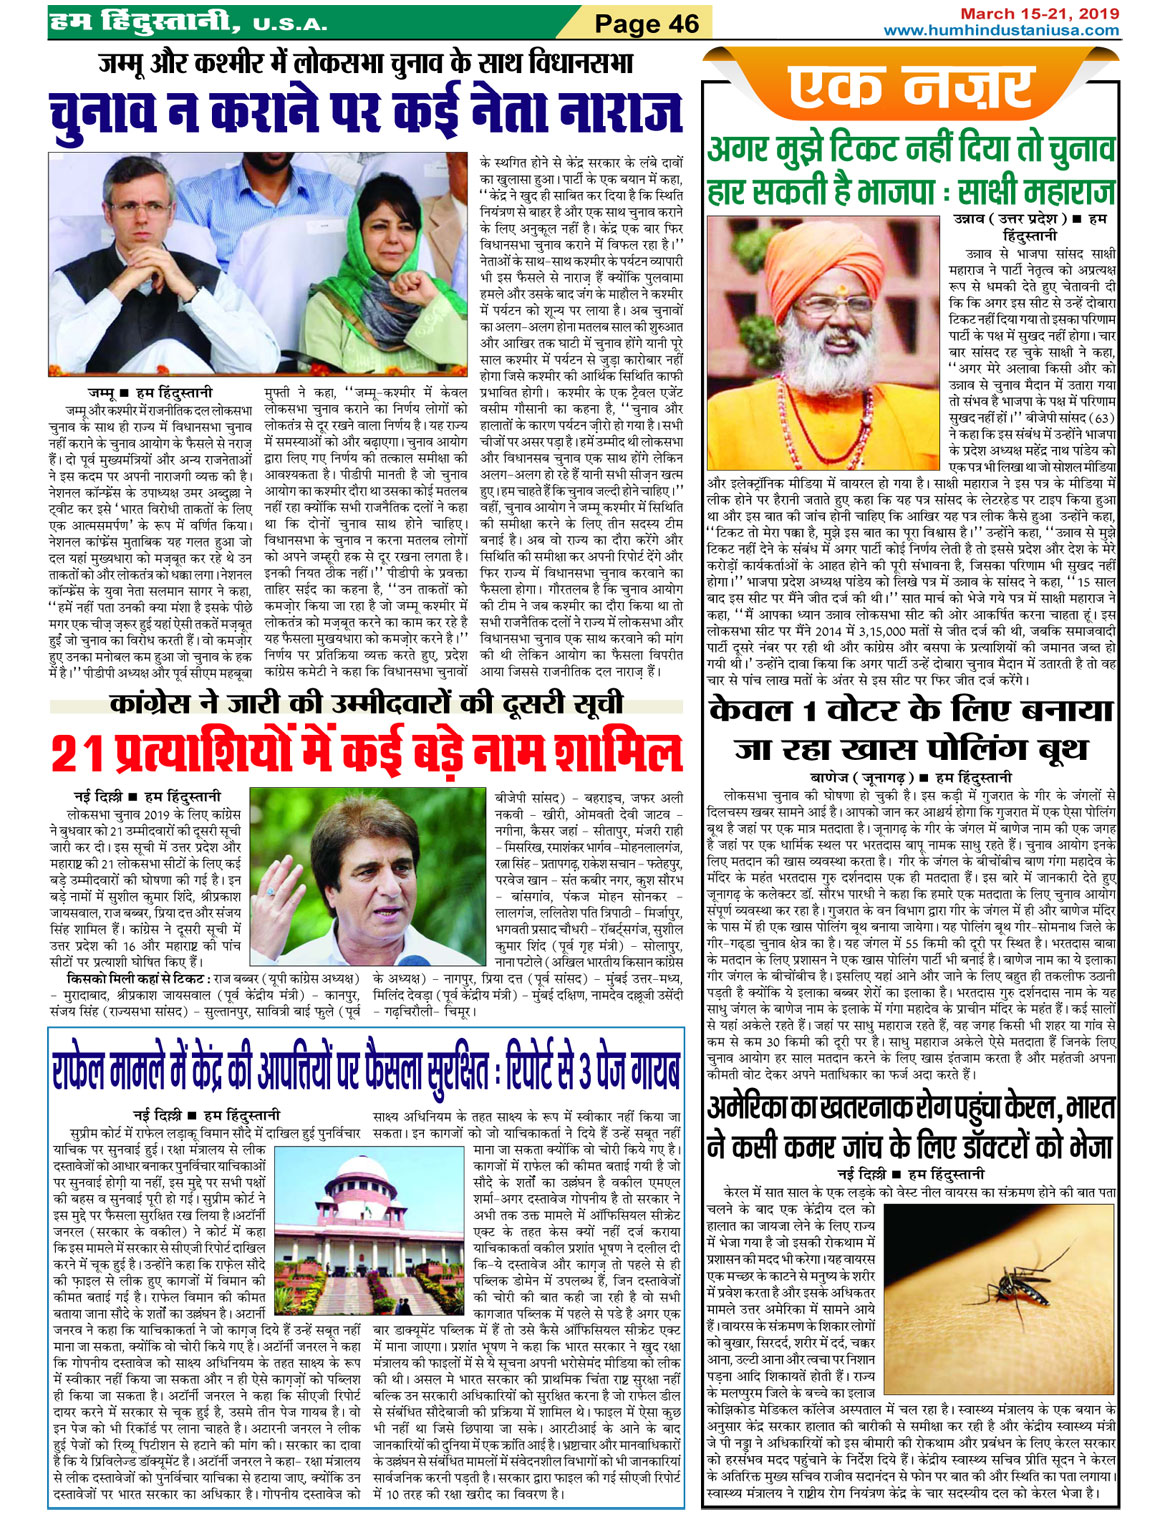 Page-46